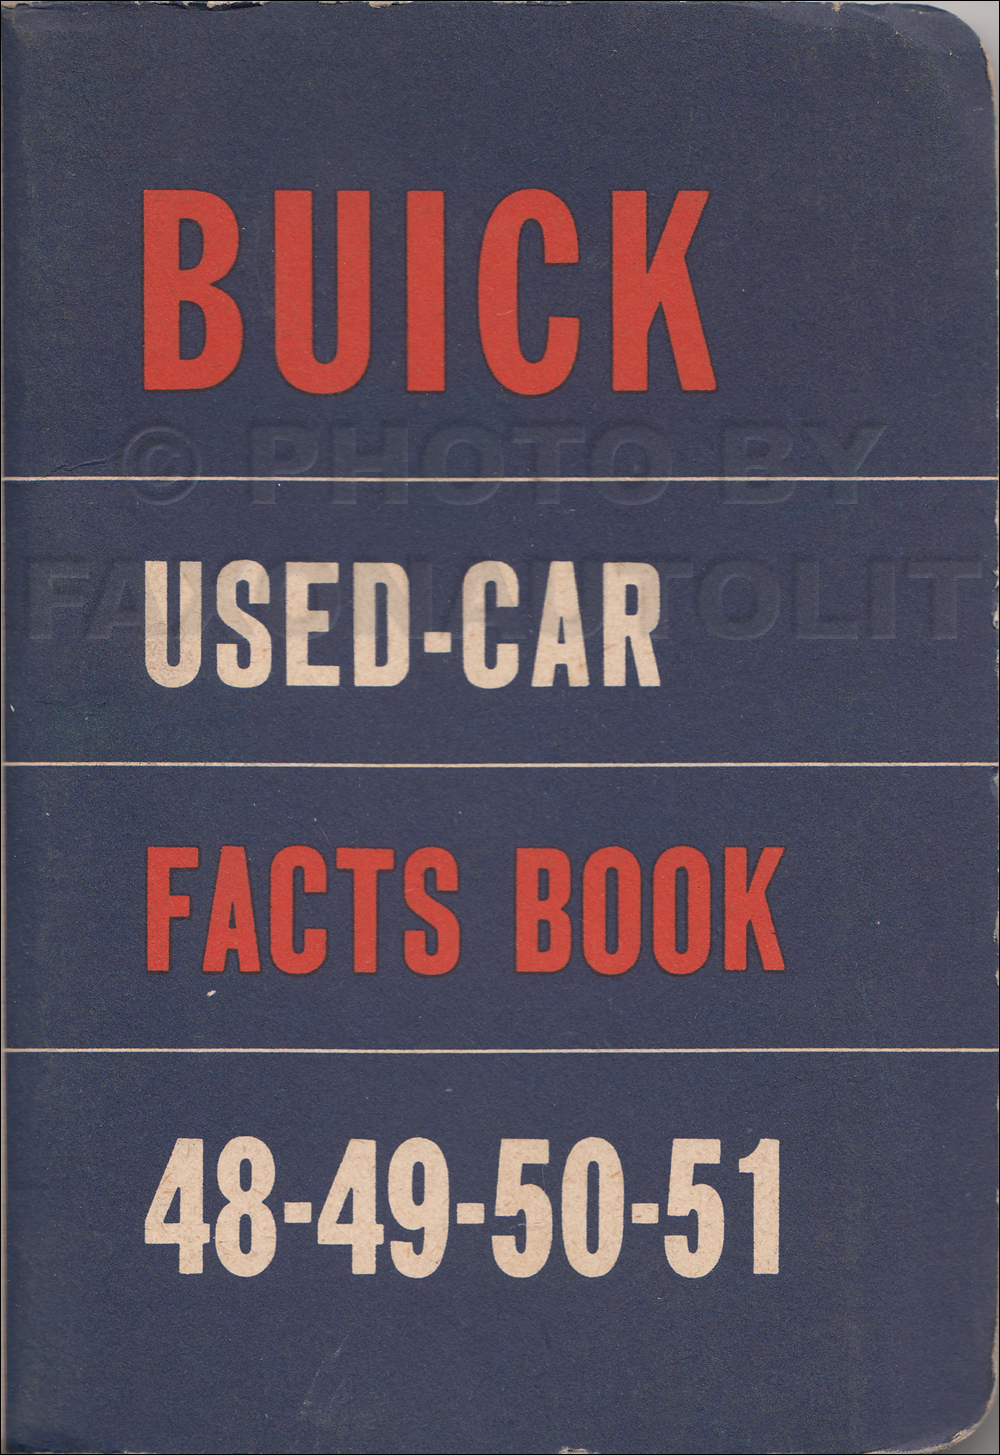 1948-1951 Buick Used Car Facts Book Original